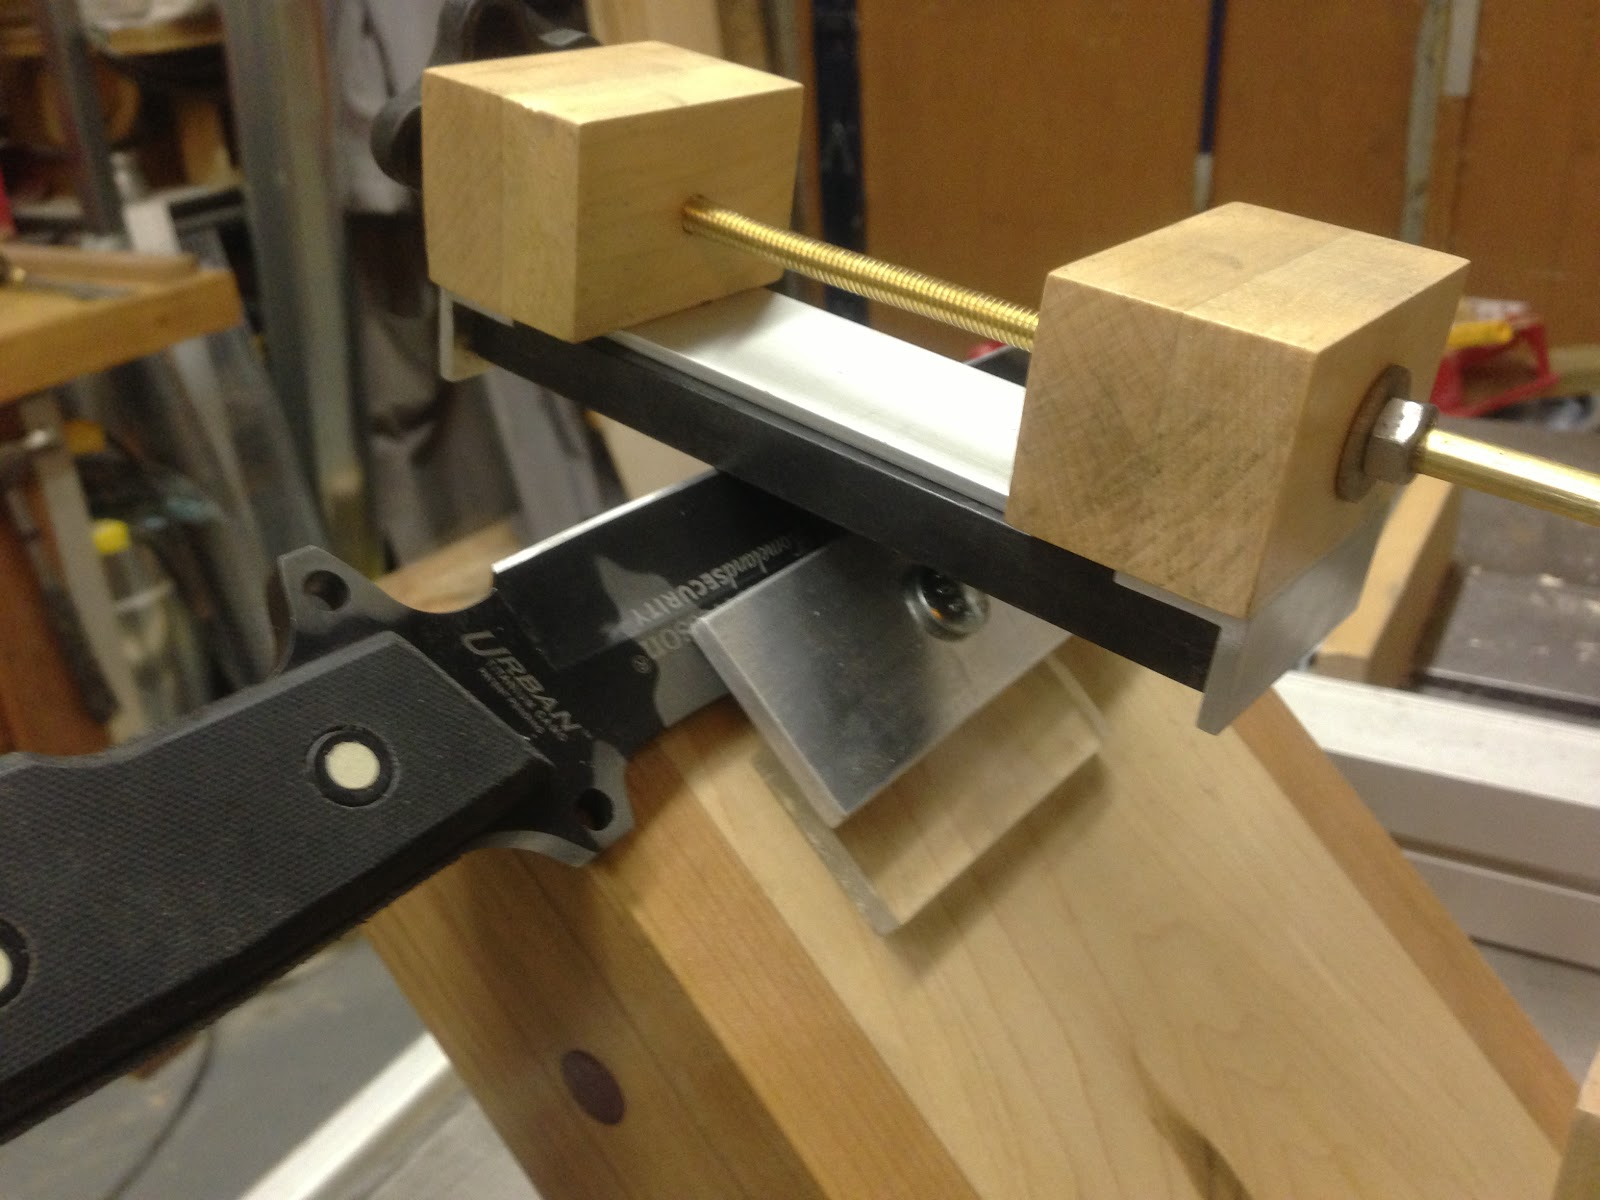 Bruster S Blog My Latest Project Knife Sharpening Jig